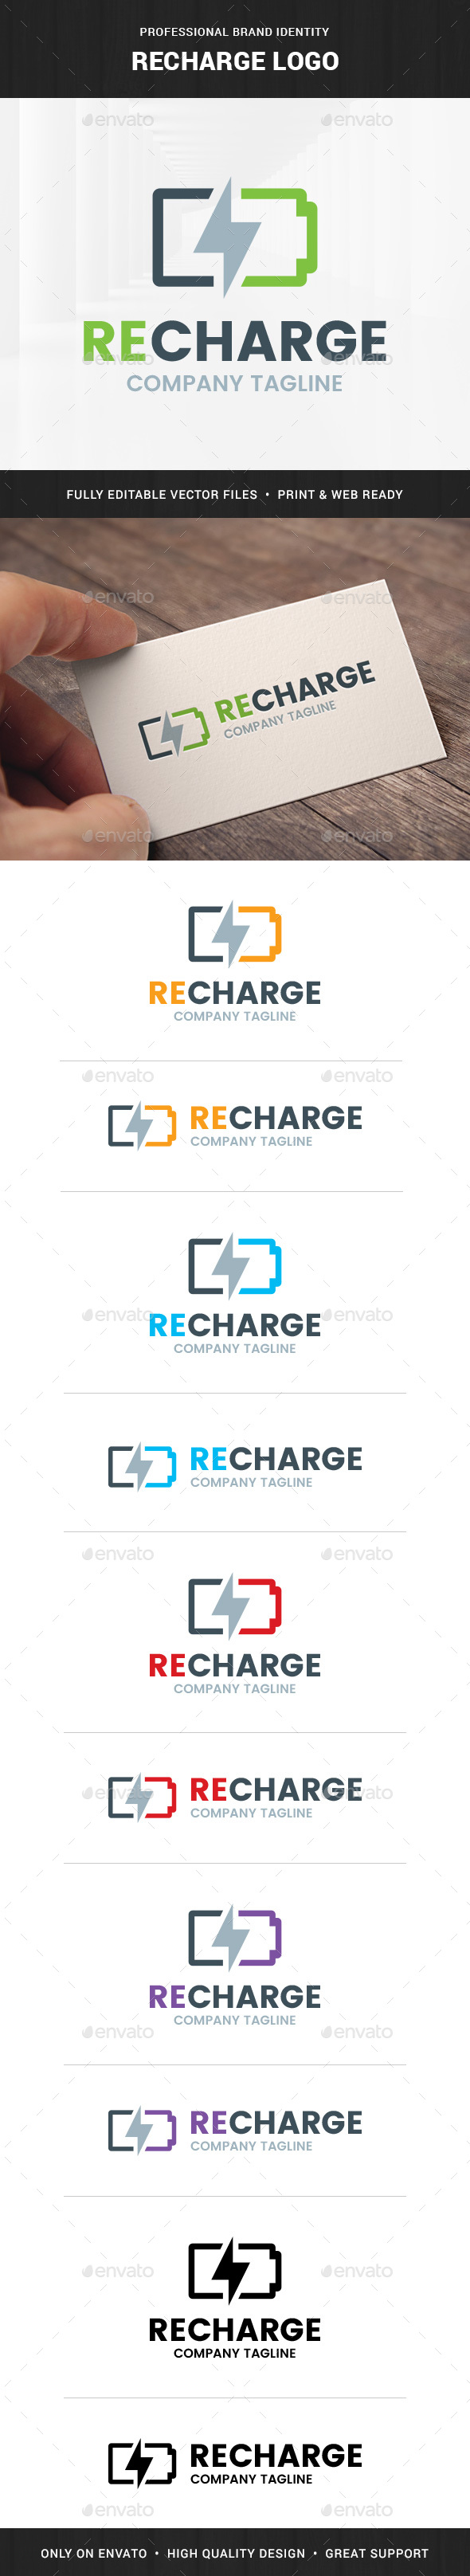 Recharge Logo Template